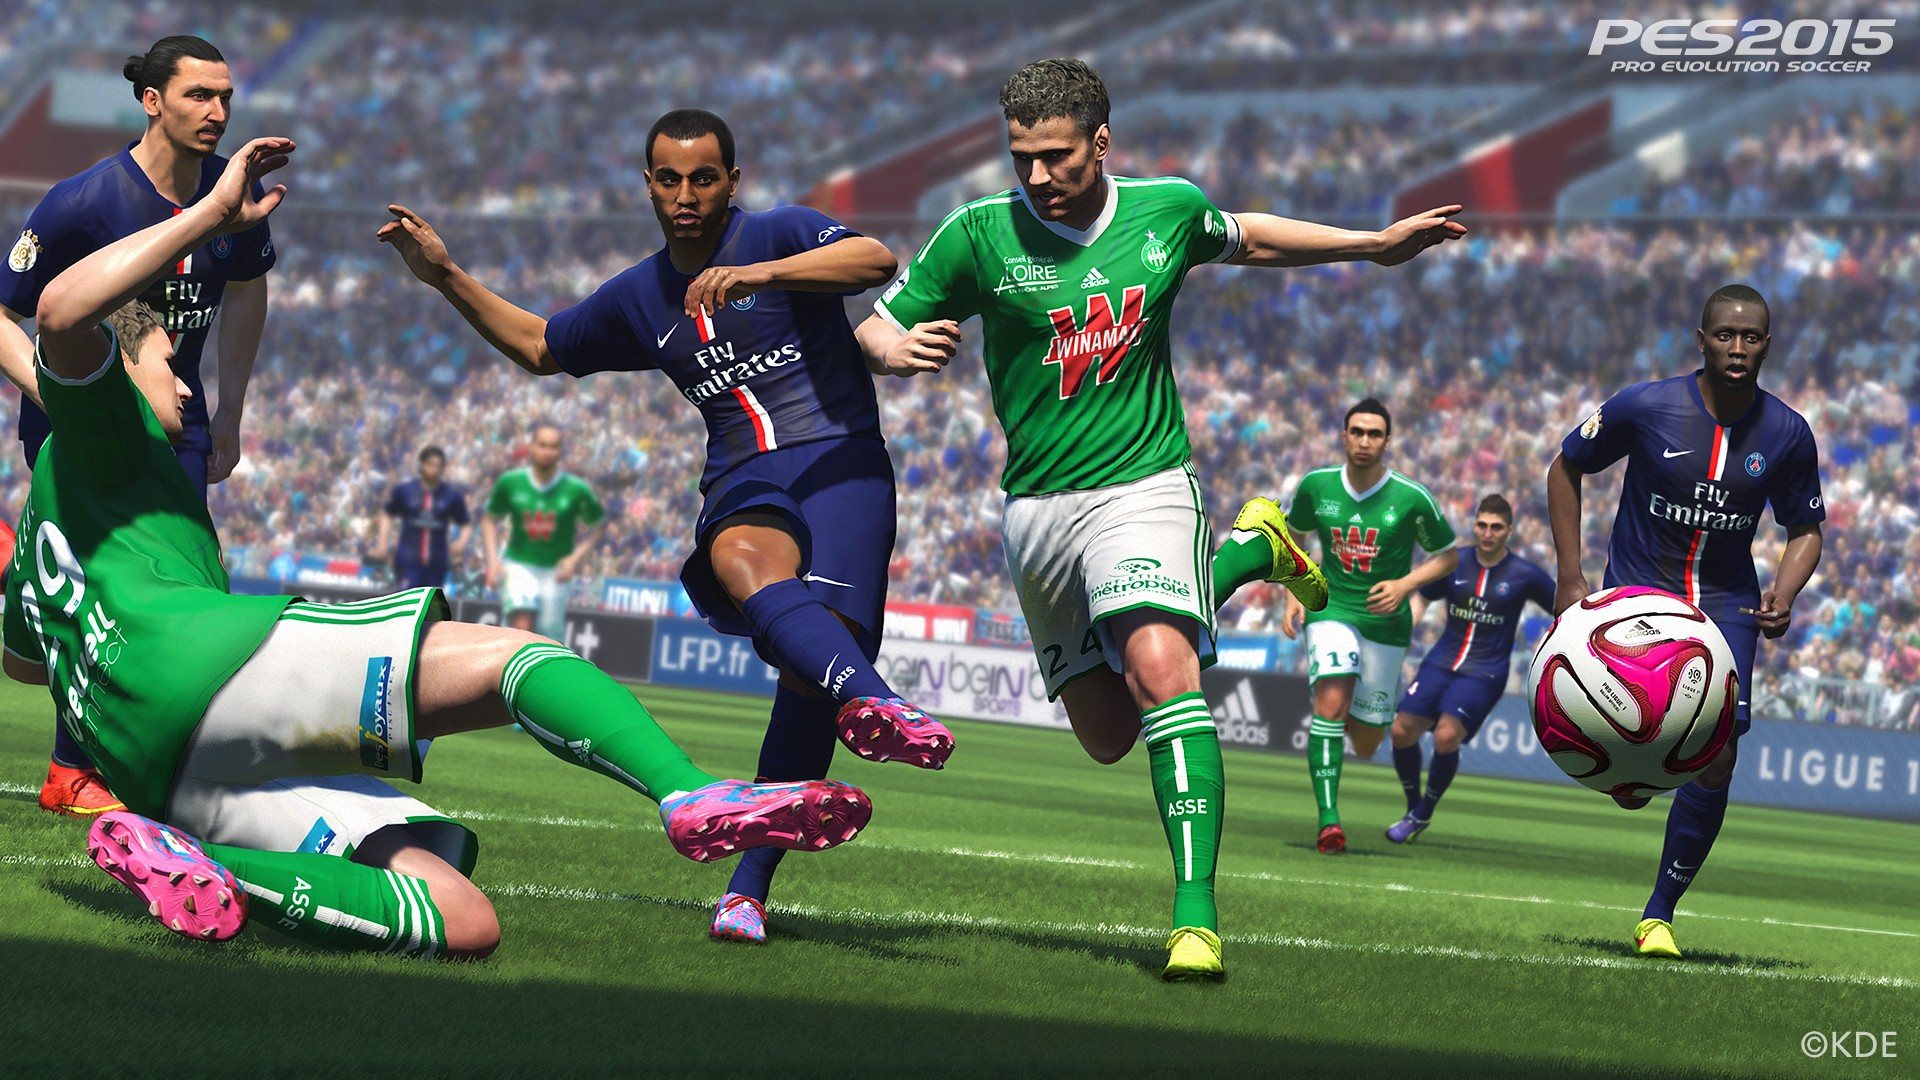 REVIEW: Pro Evolution Soccer 2015 - The Return Of The King? | Balls ie